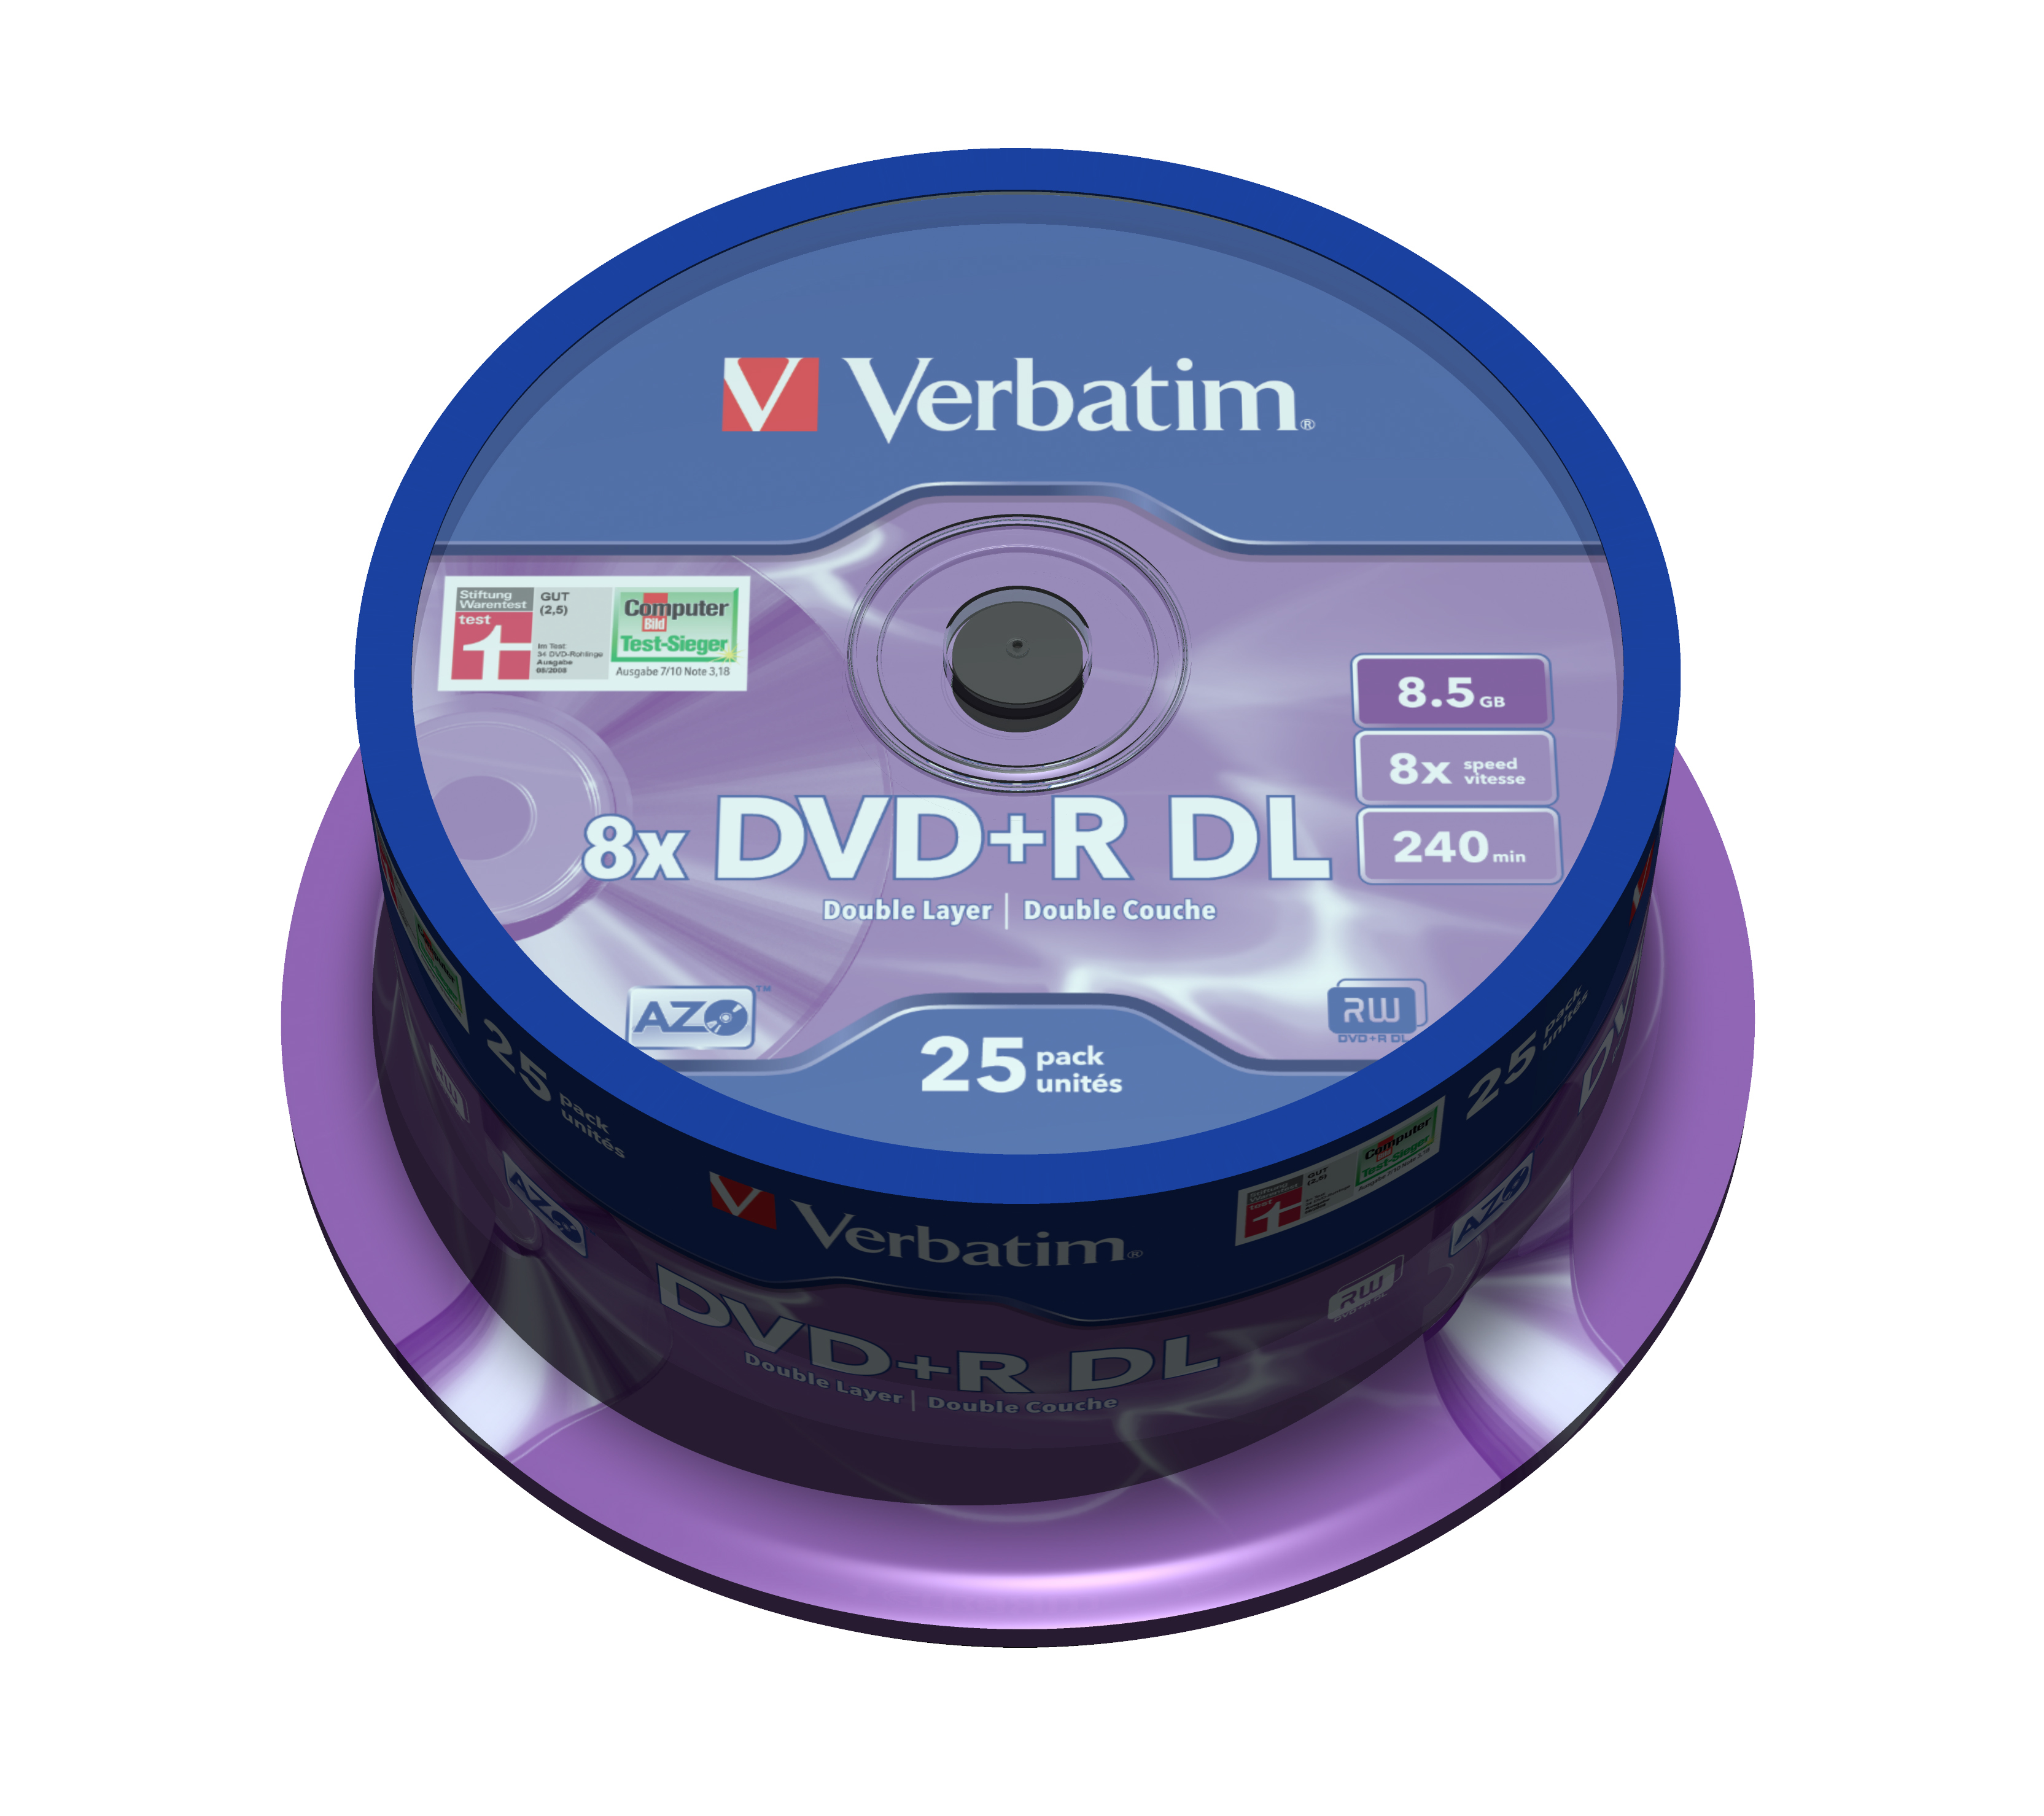 DVD+R 8,5 GB Double Layer, 8 speed (25-spindel)